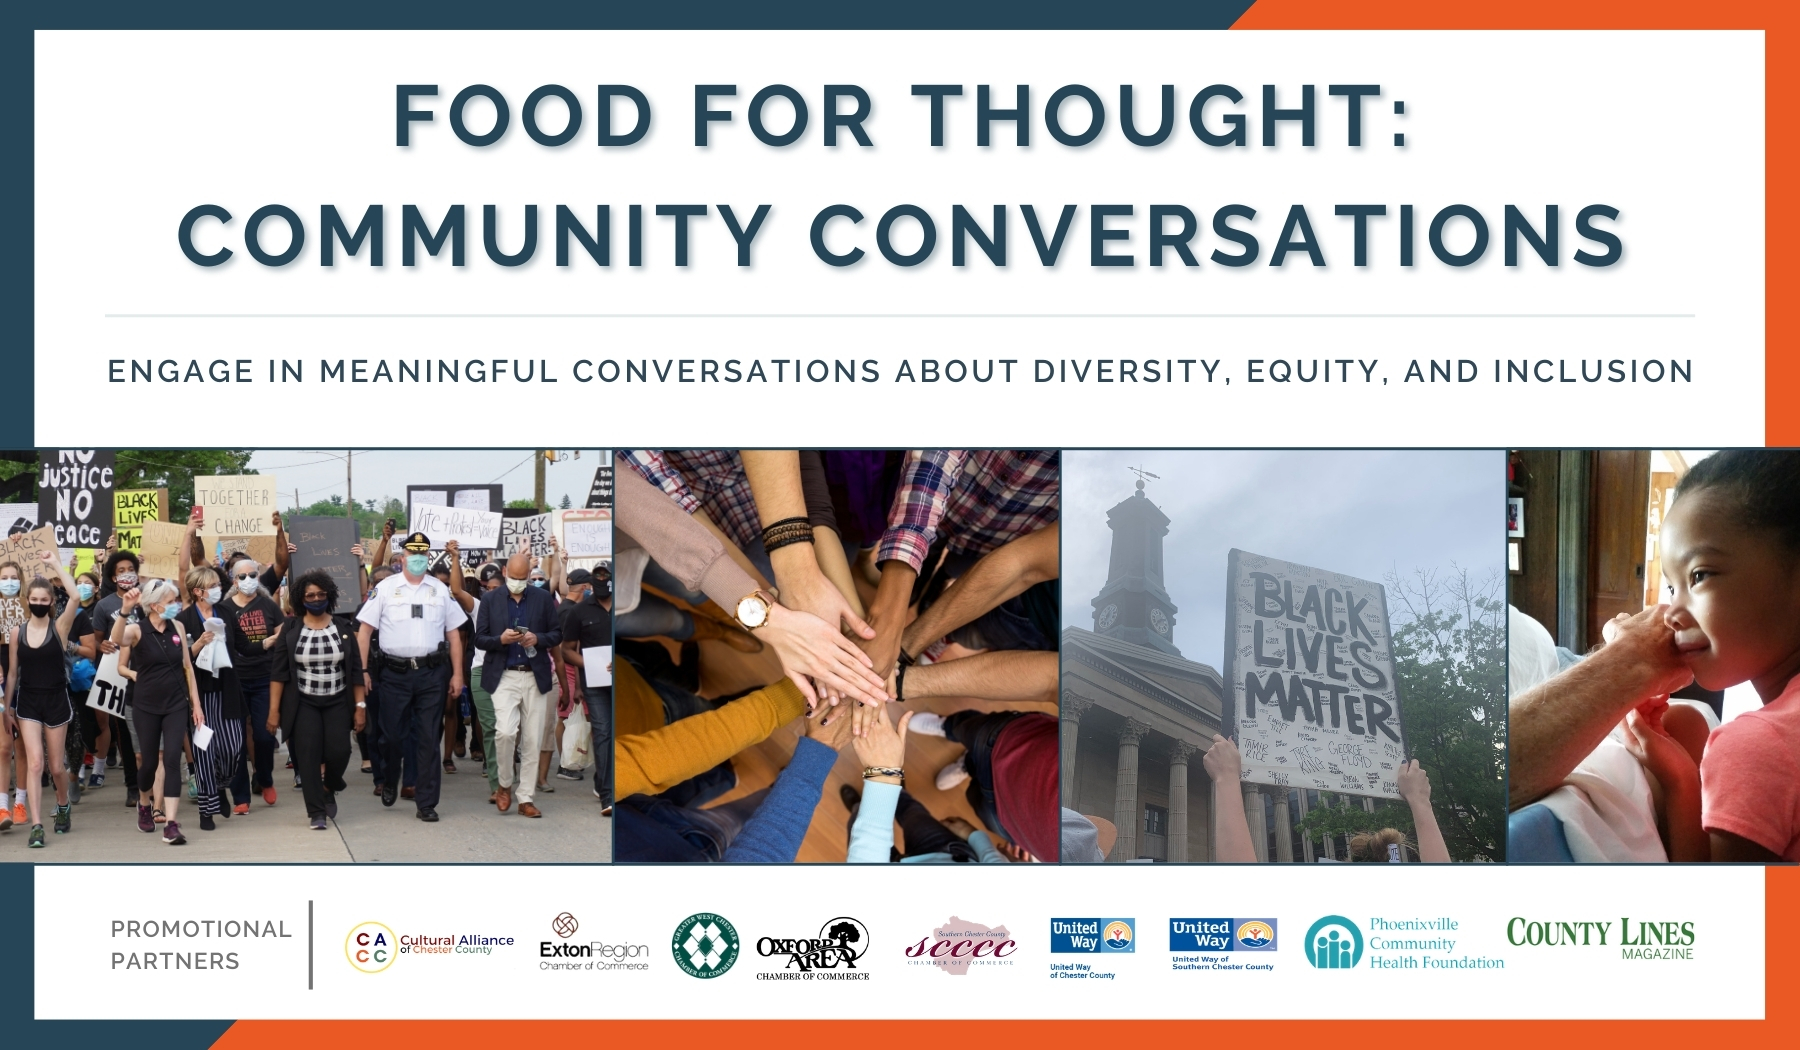 ChescoCF Foo for Thought Community Conversations